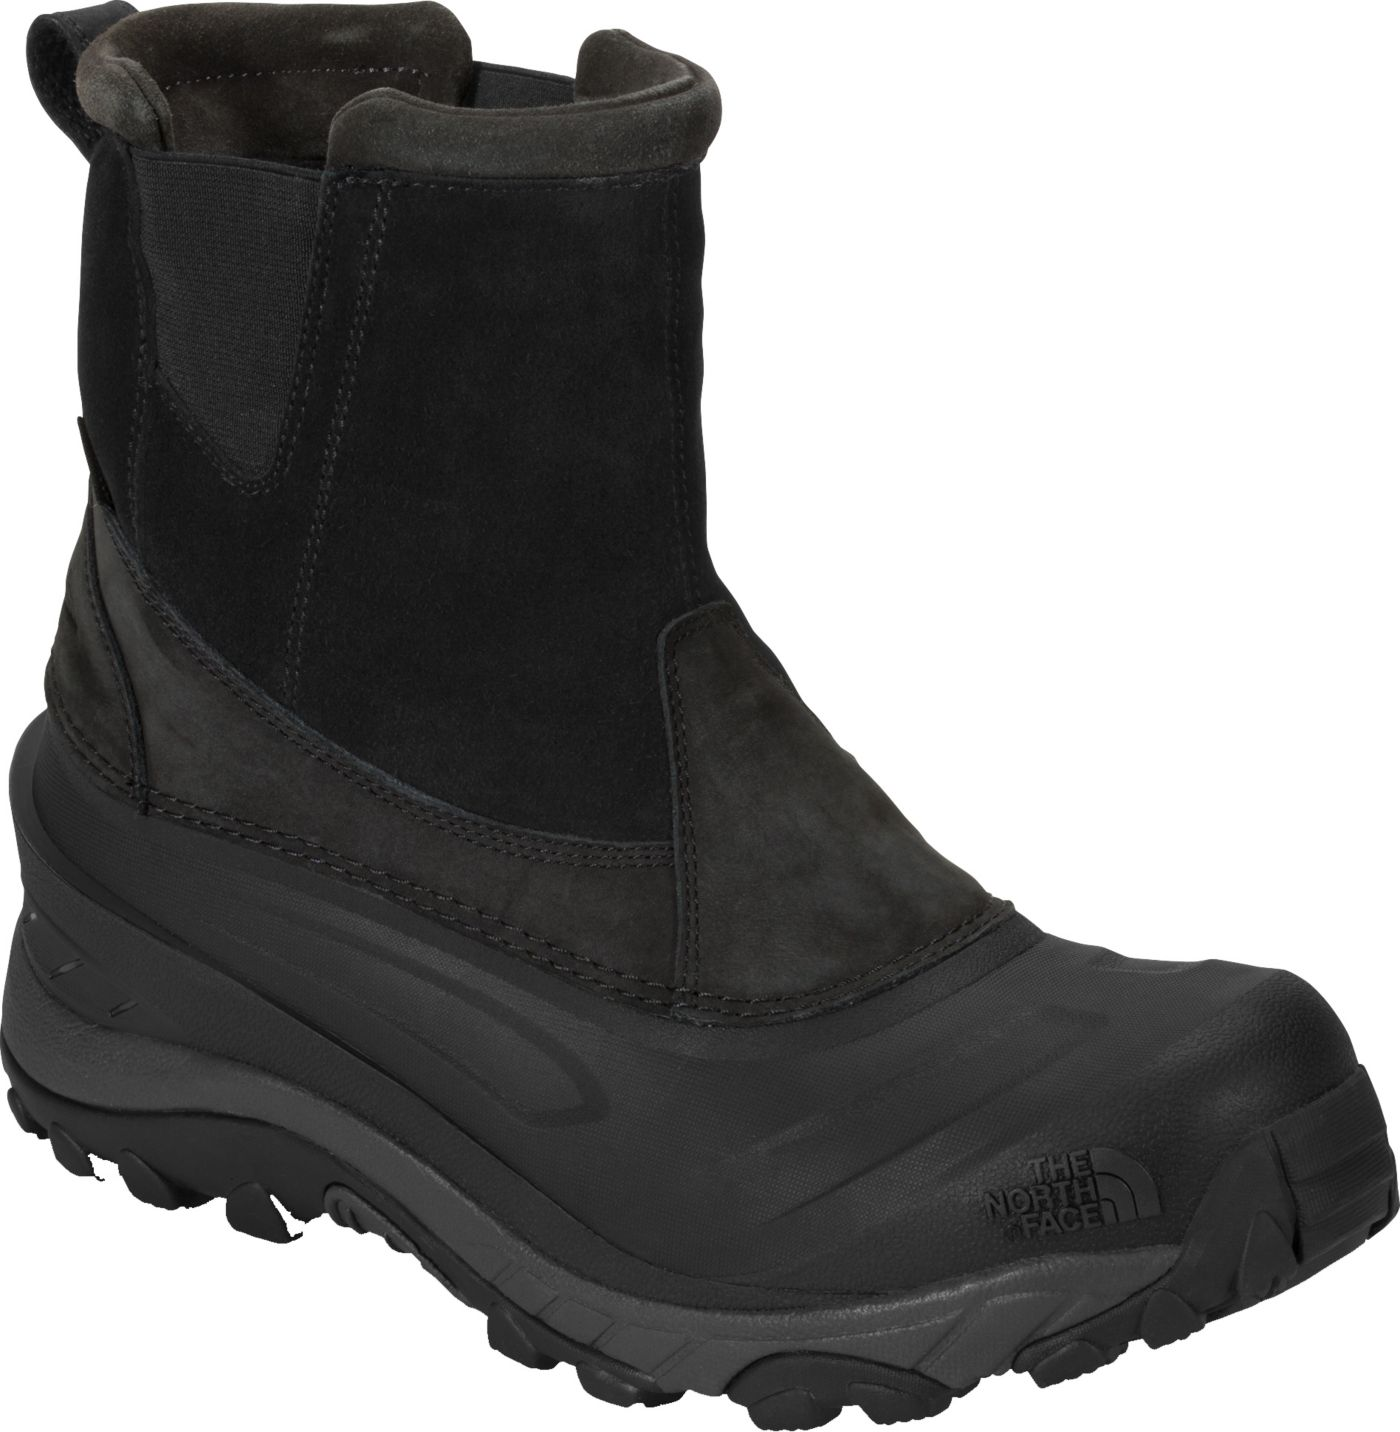 9c8920285 The North Face Men's Chilkat III Pull-On 200g Waterproof Winter Boots